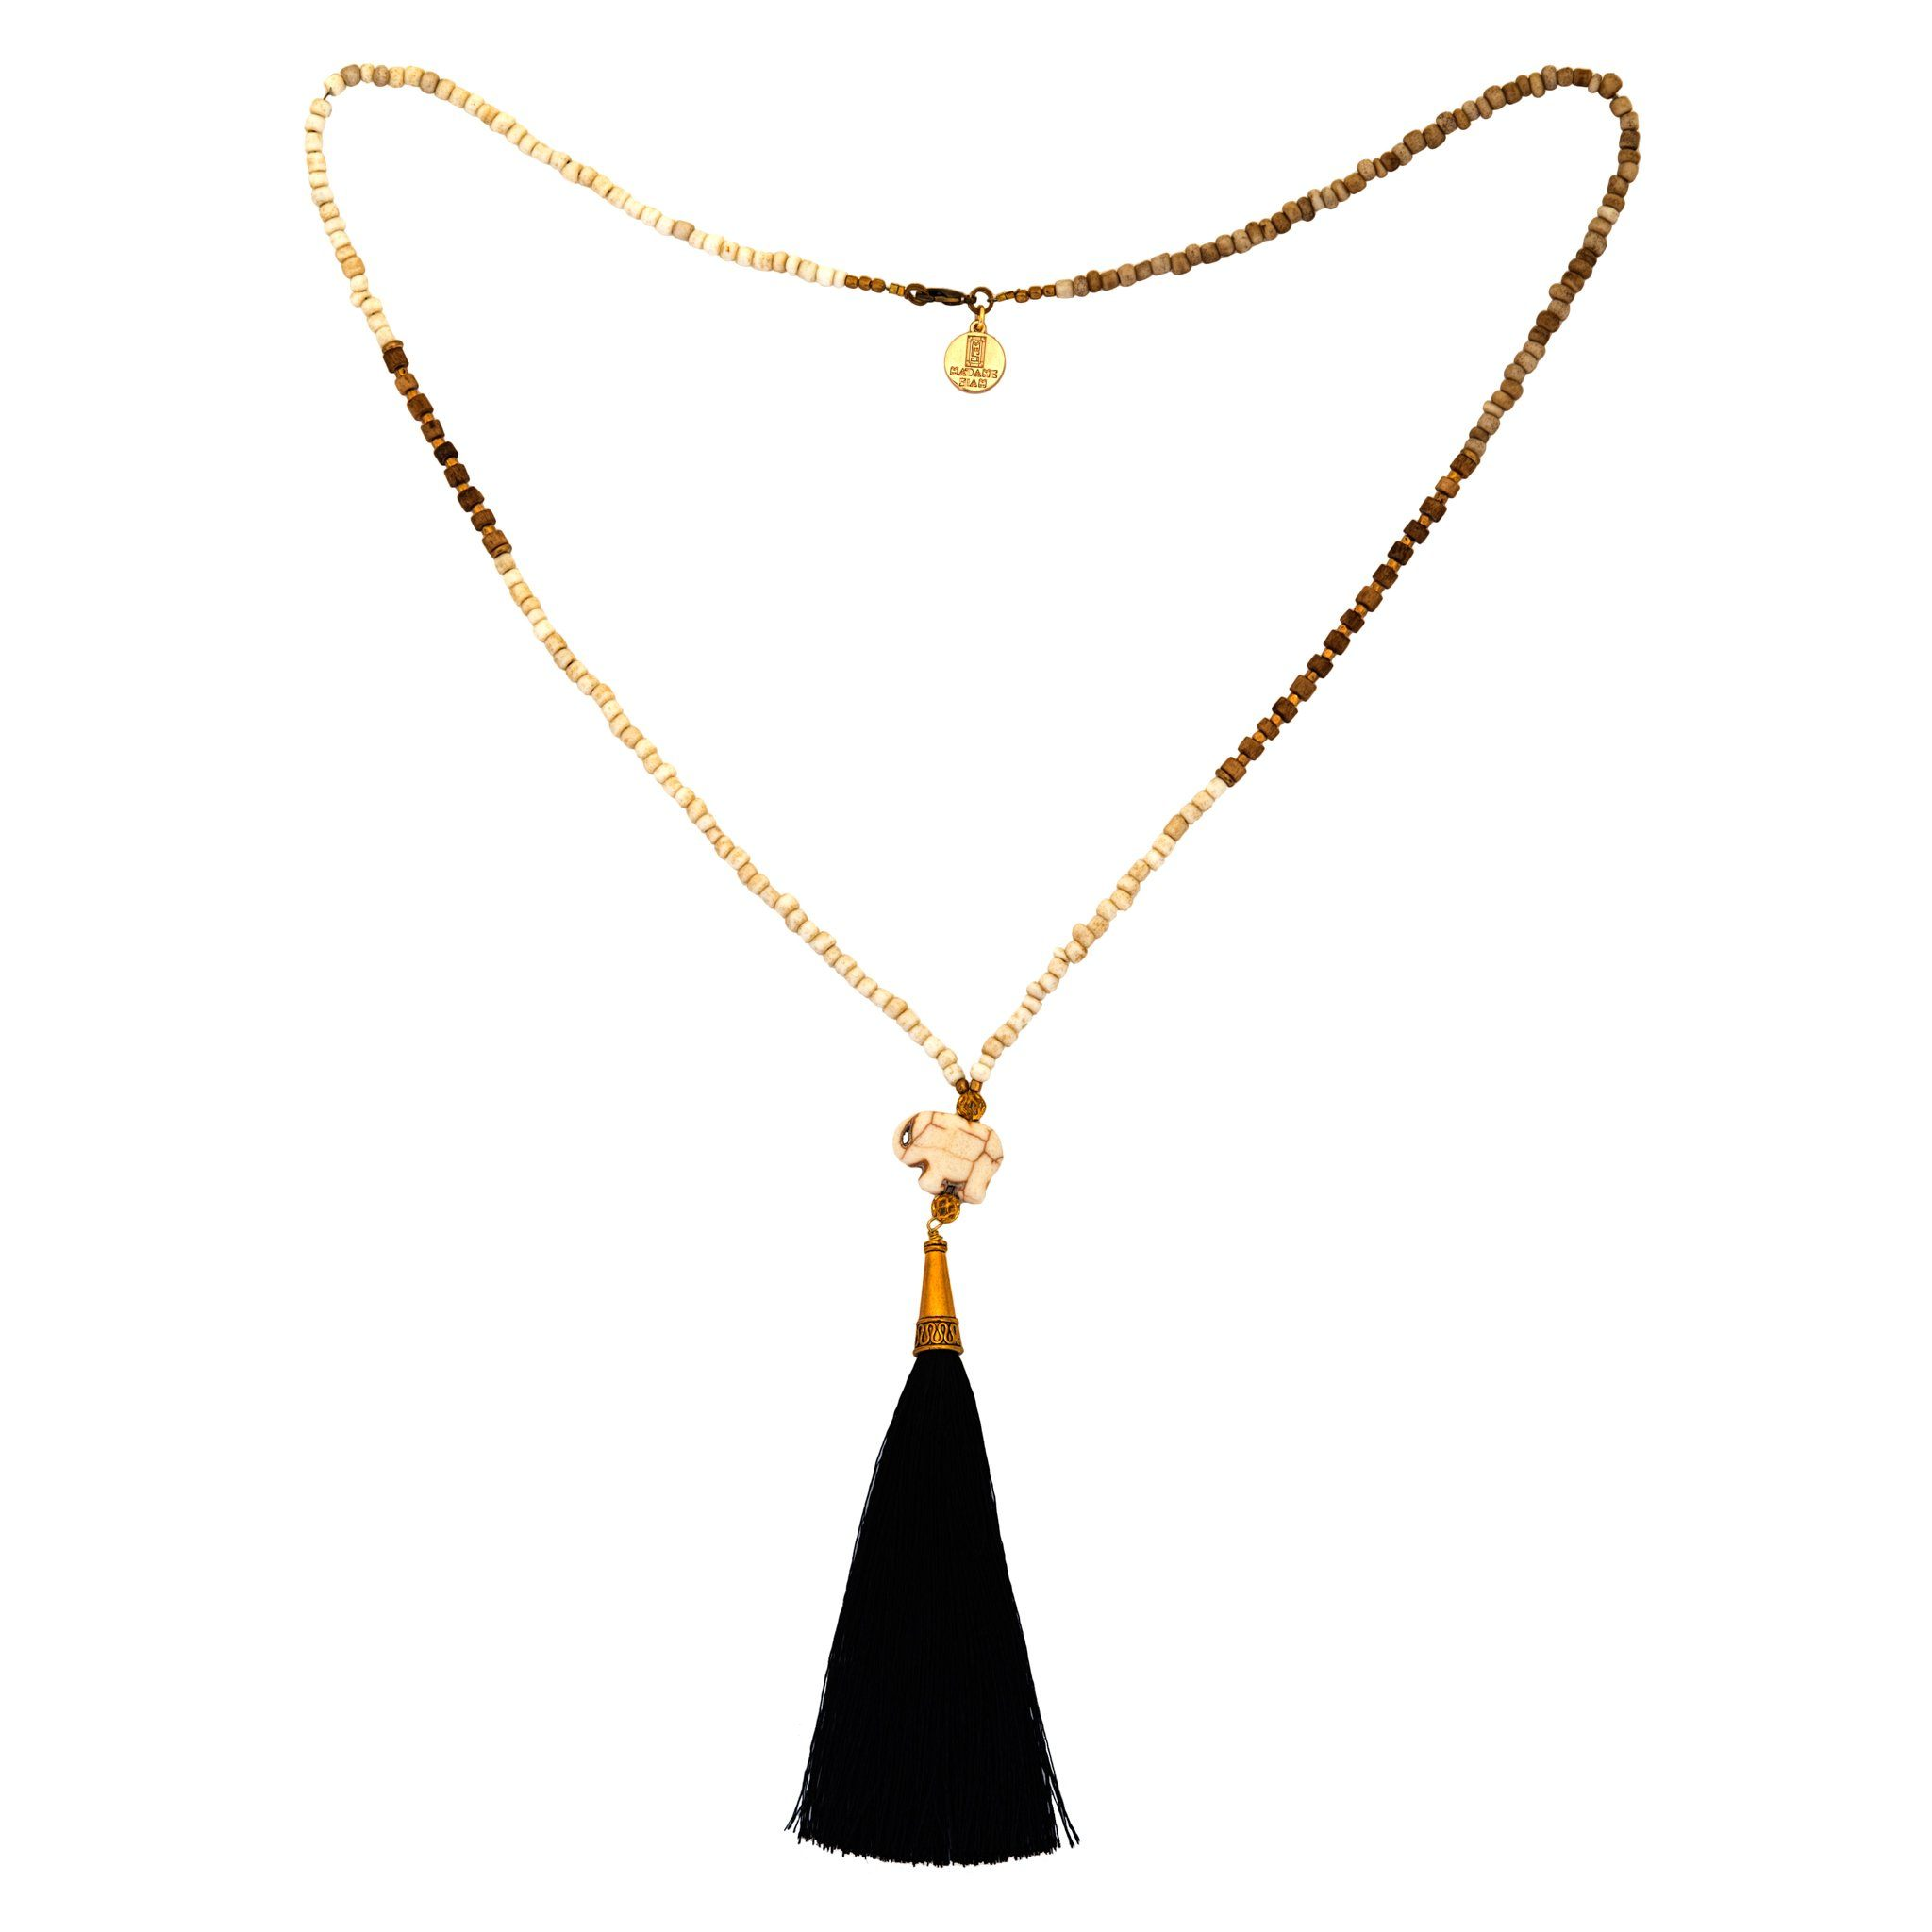 CHANG black and white tassel necklace - MadamSiam